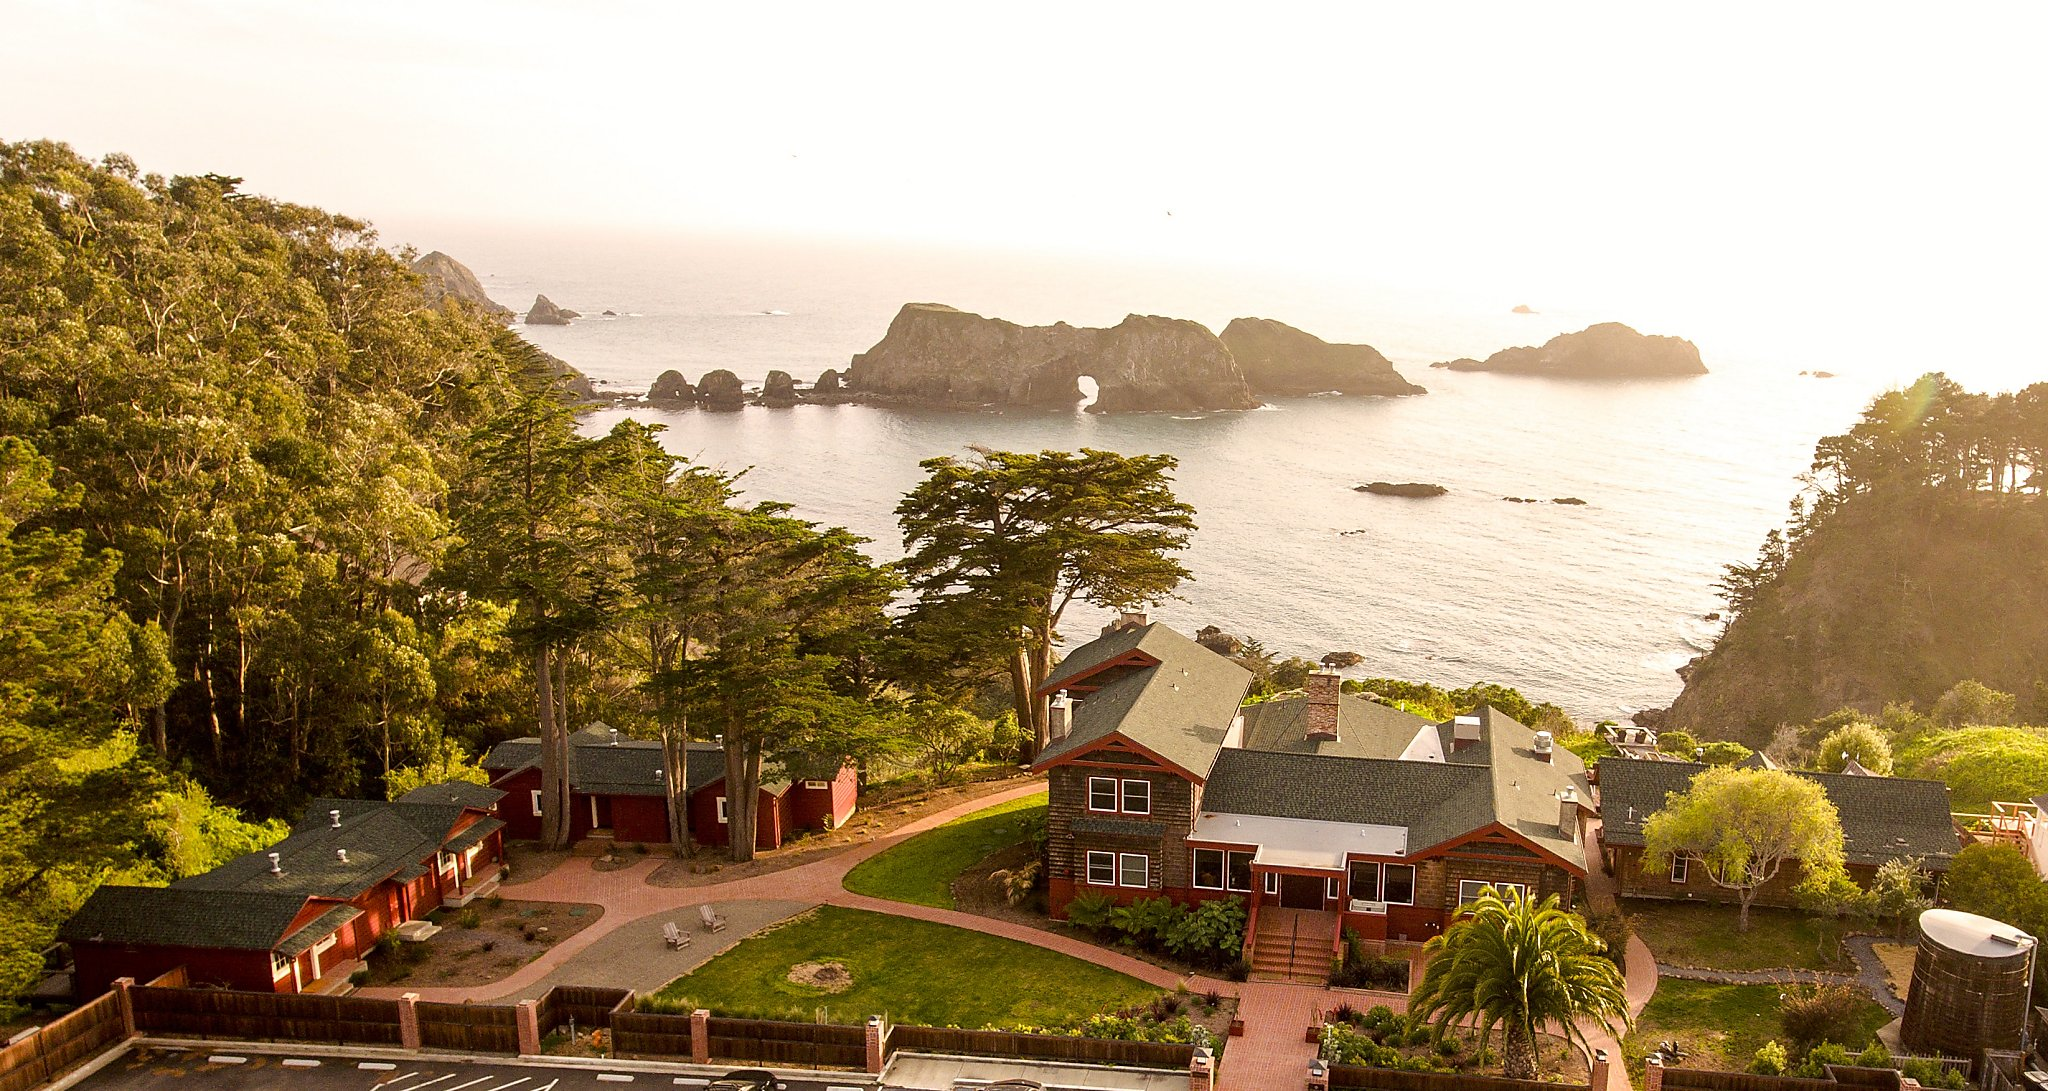 Suite Spot: Harbor House Inn, Mendocino - SFChronicle.com